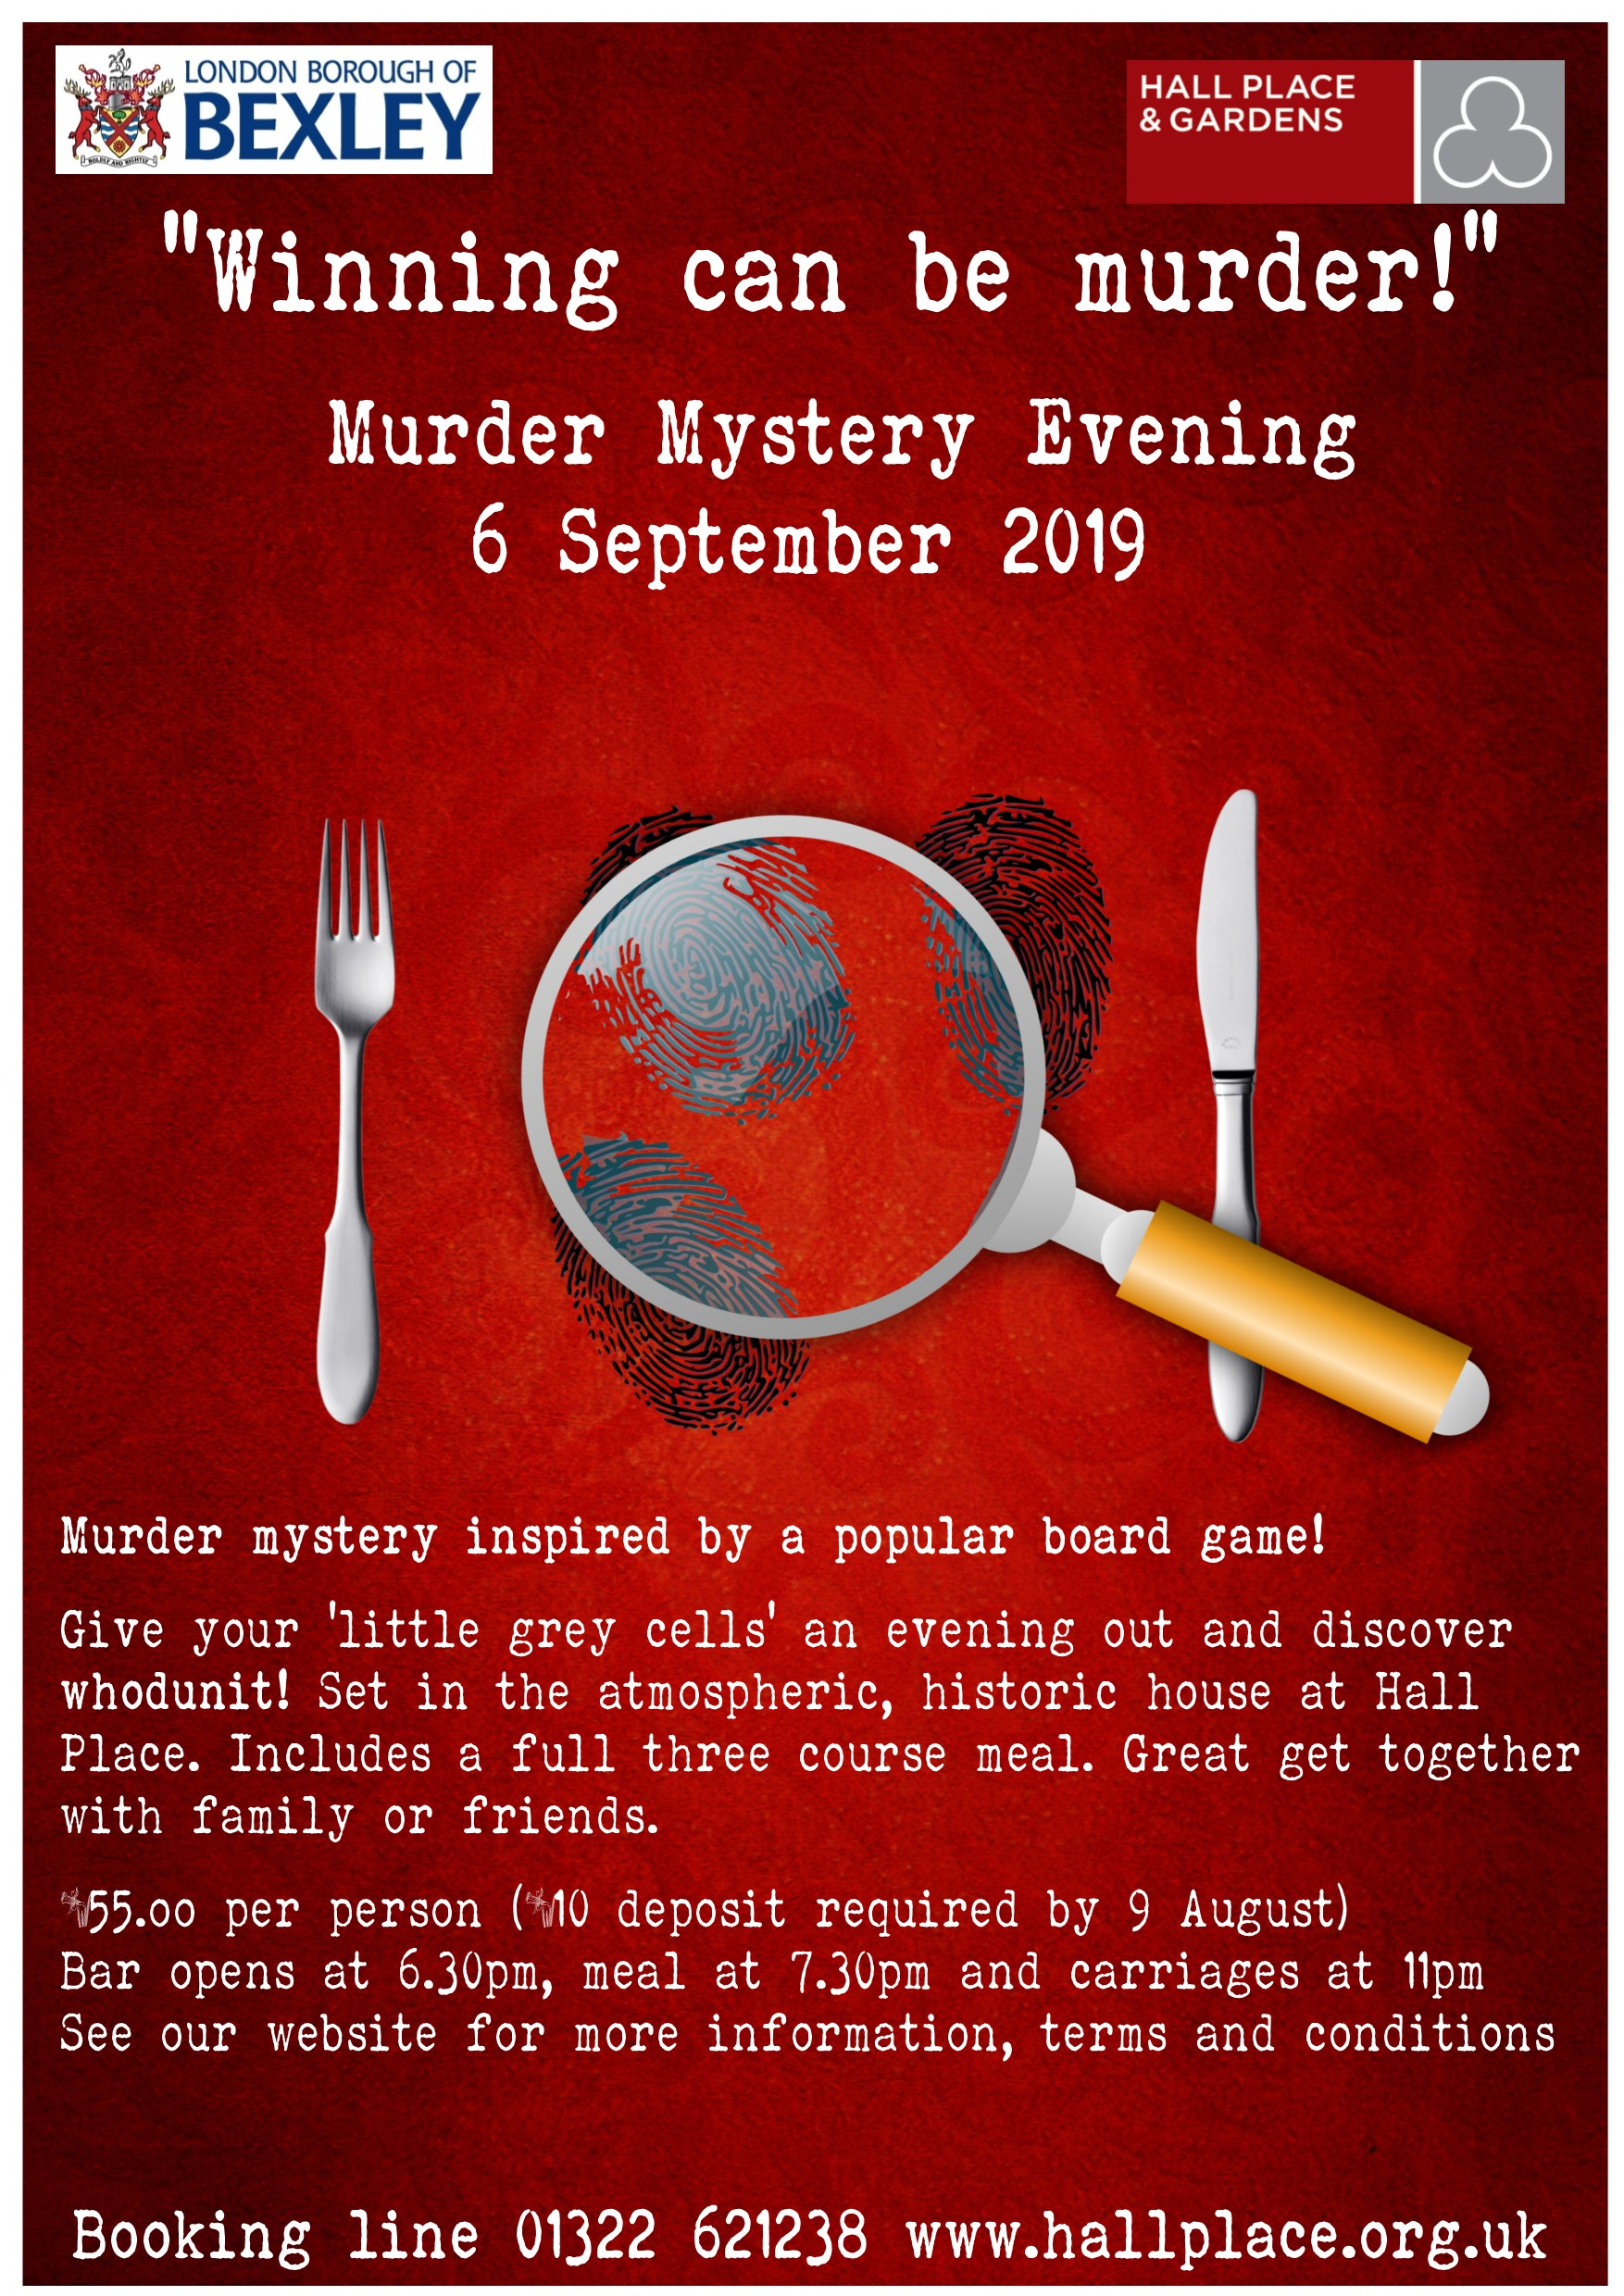 Event Advertising - Murder Mystery Evening